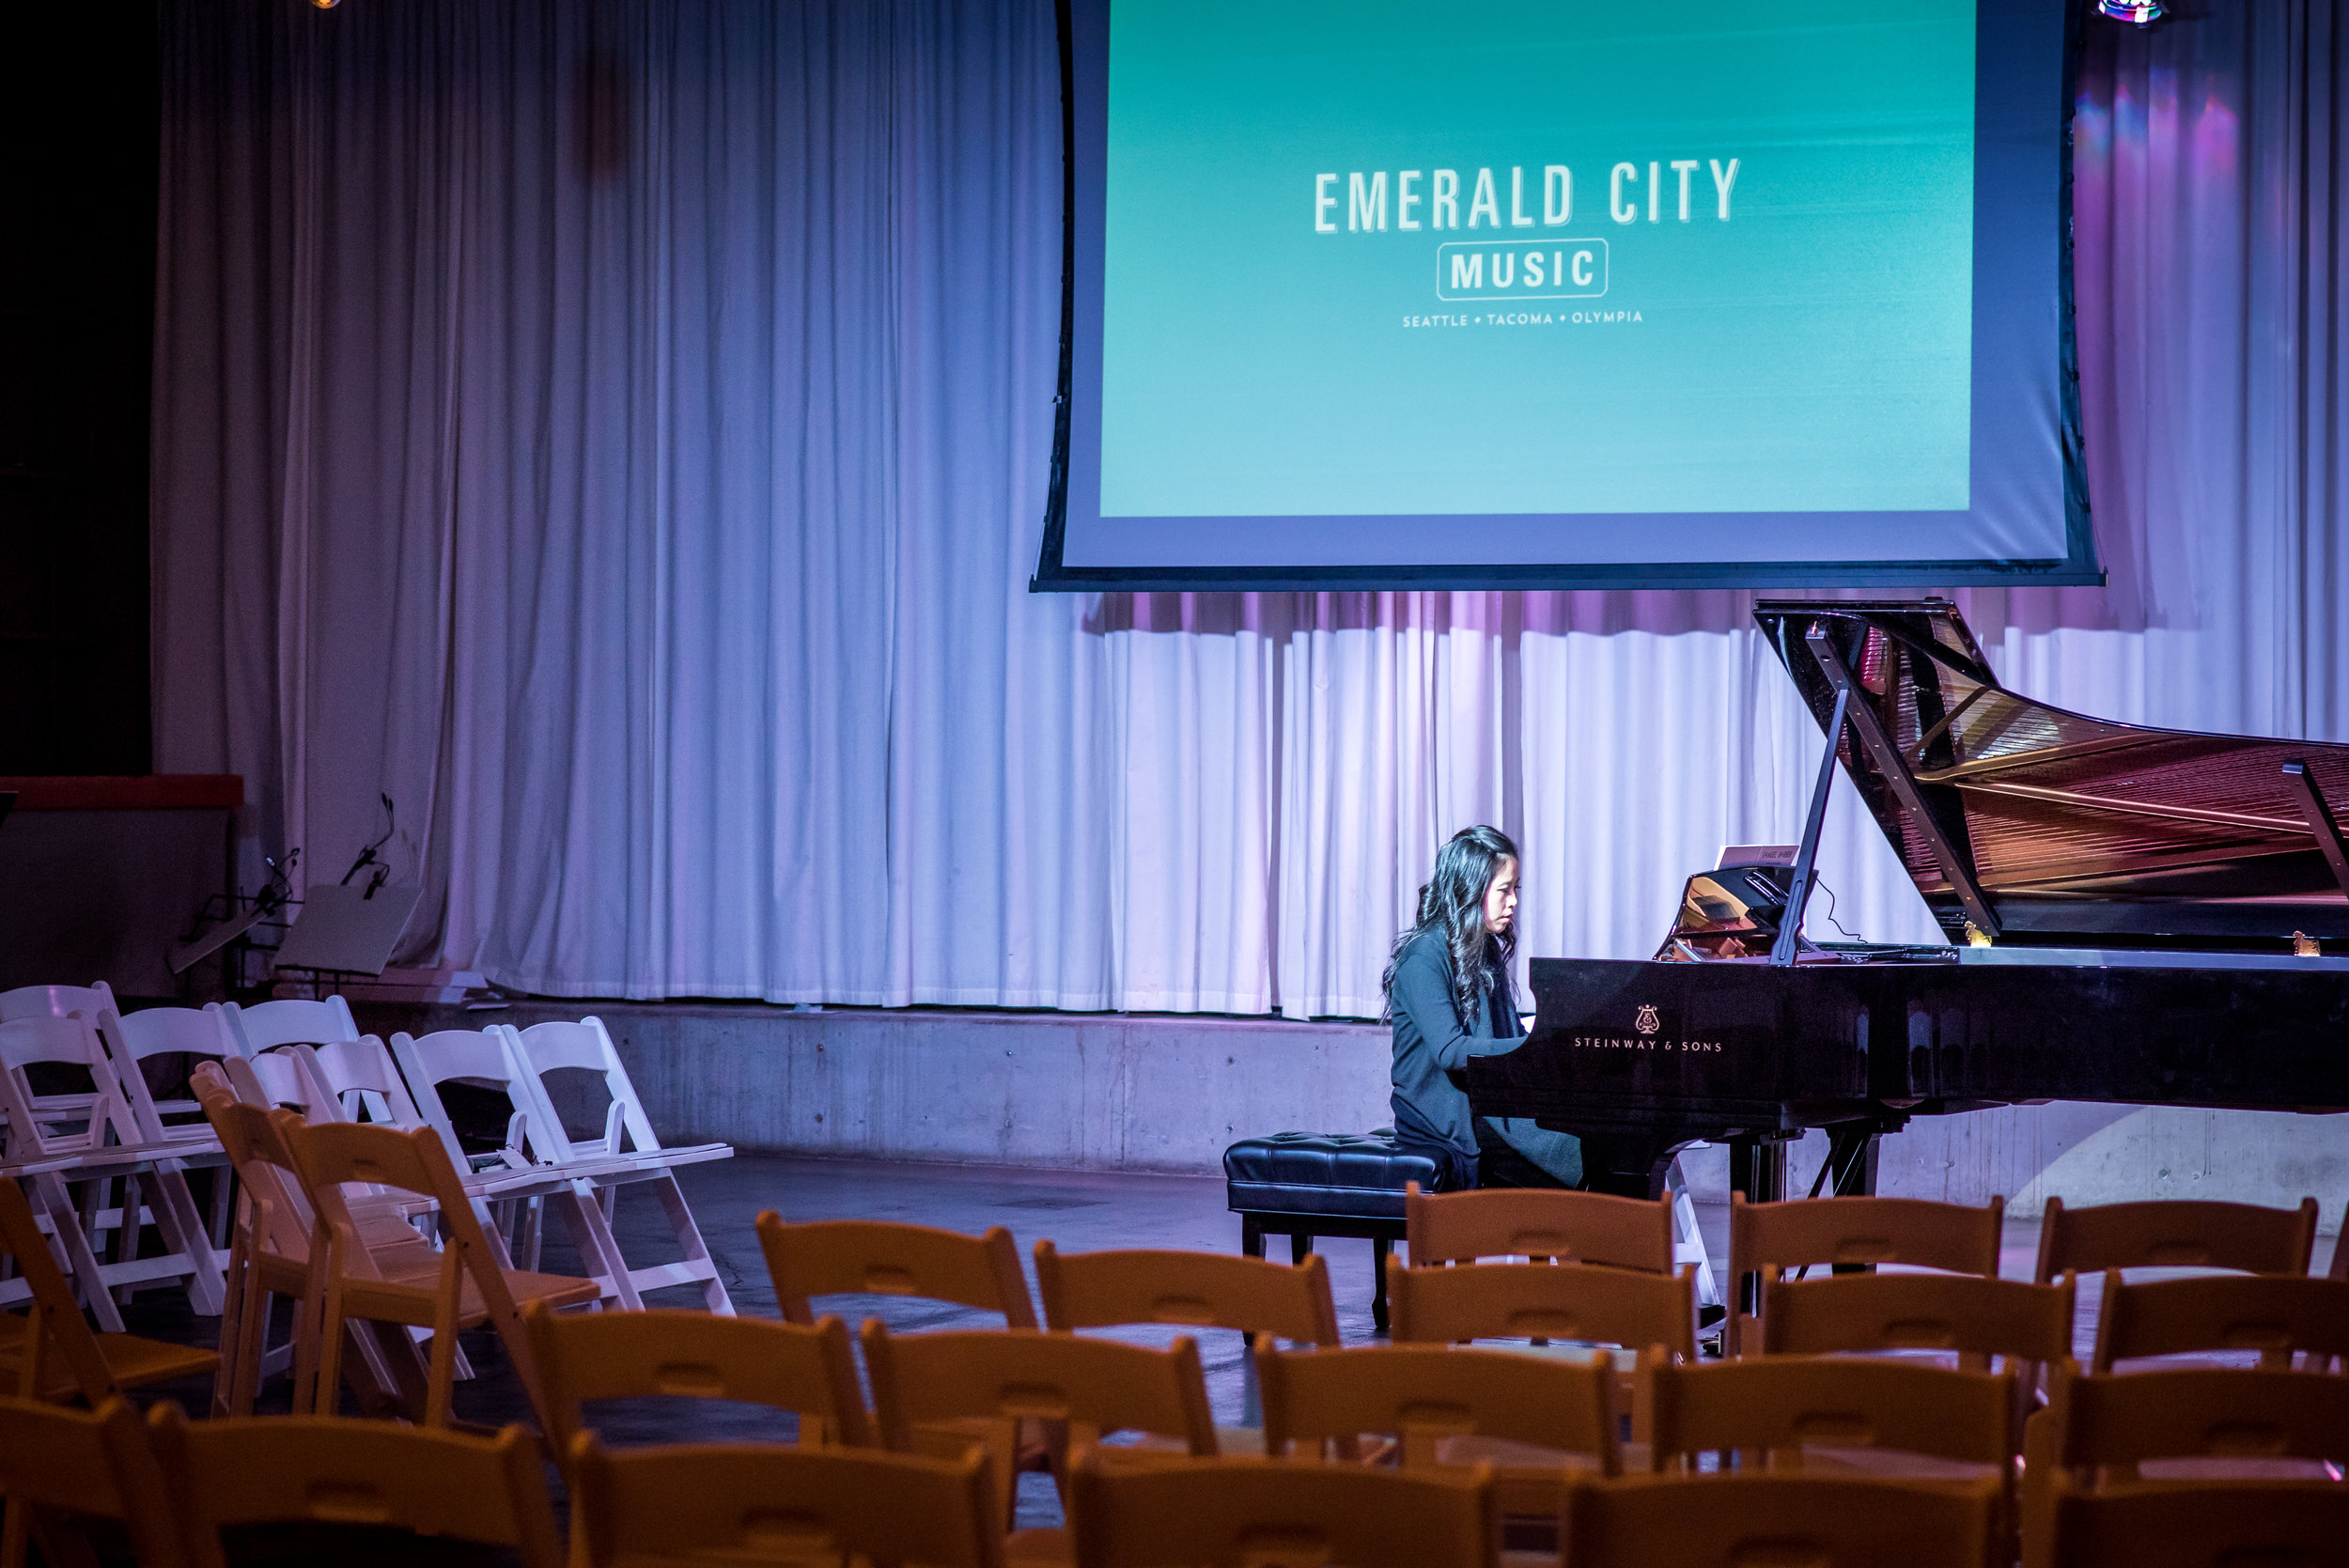 Pianist Gloria Chien warming up before Emerald City Music's inaugural season opening night in September 2016.